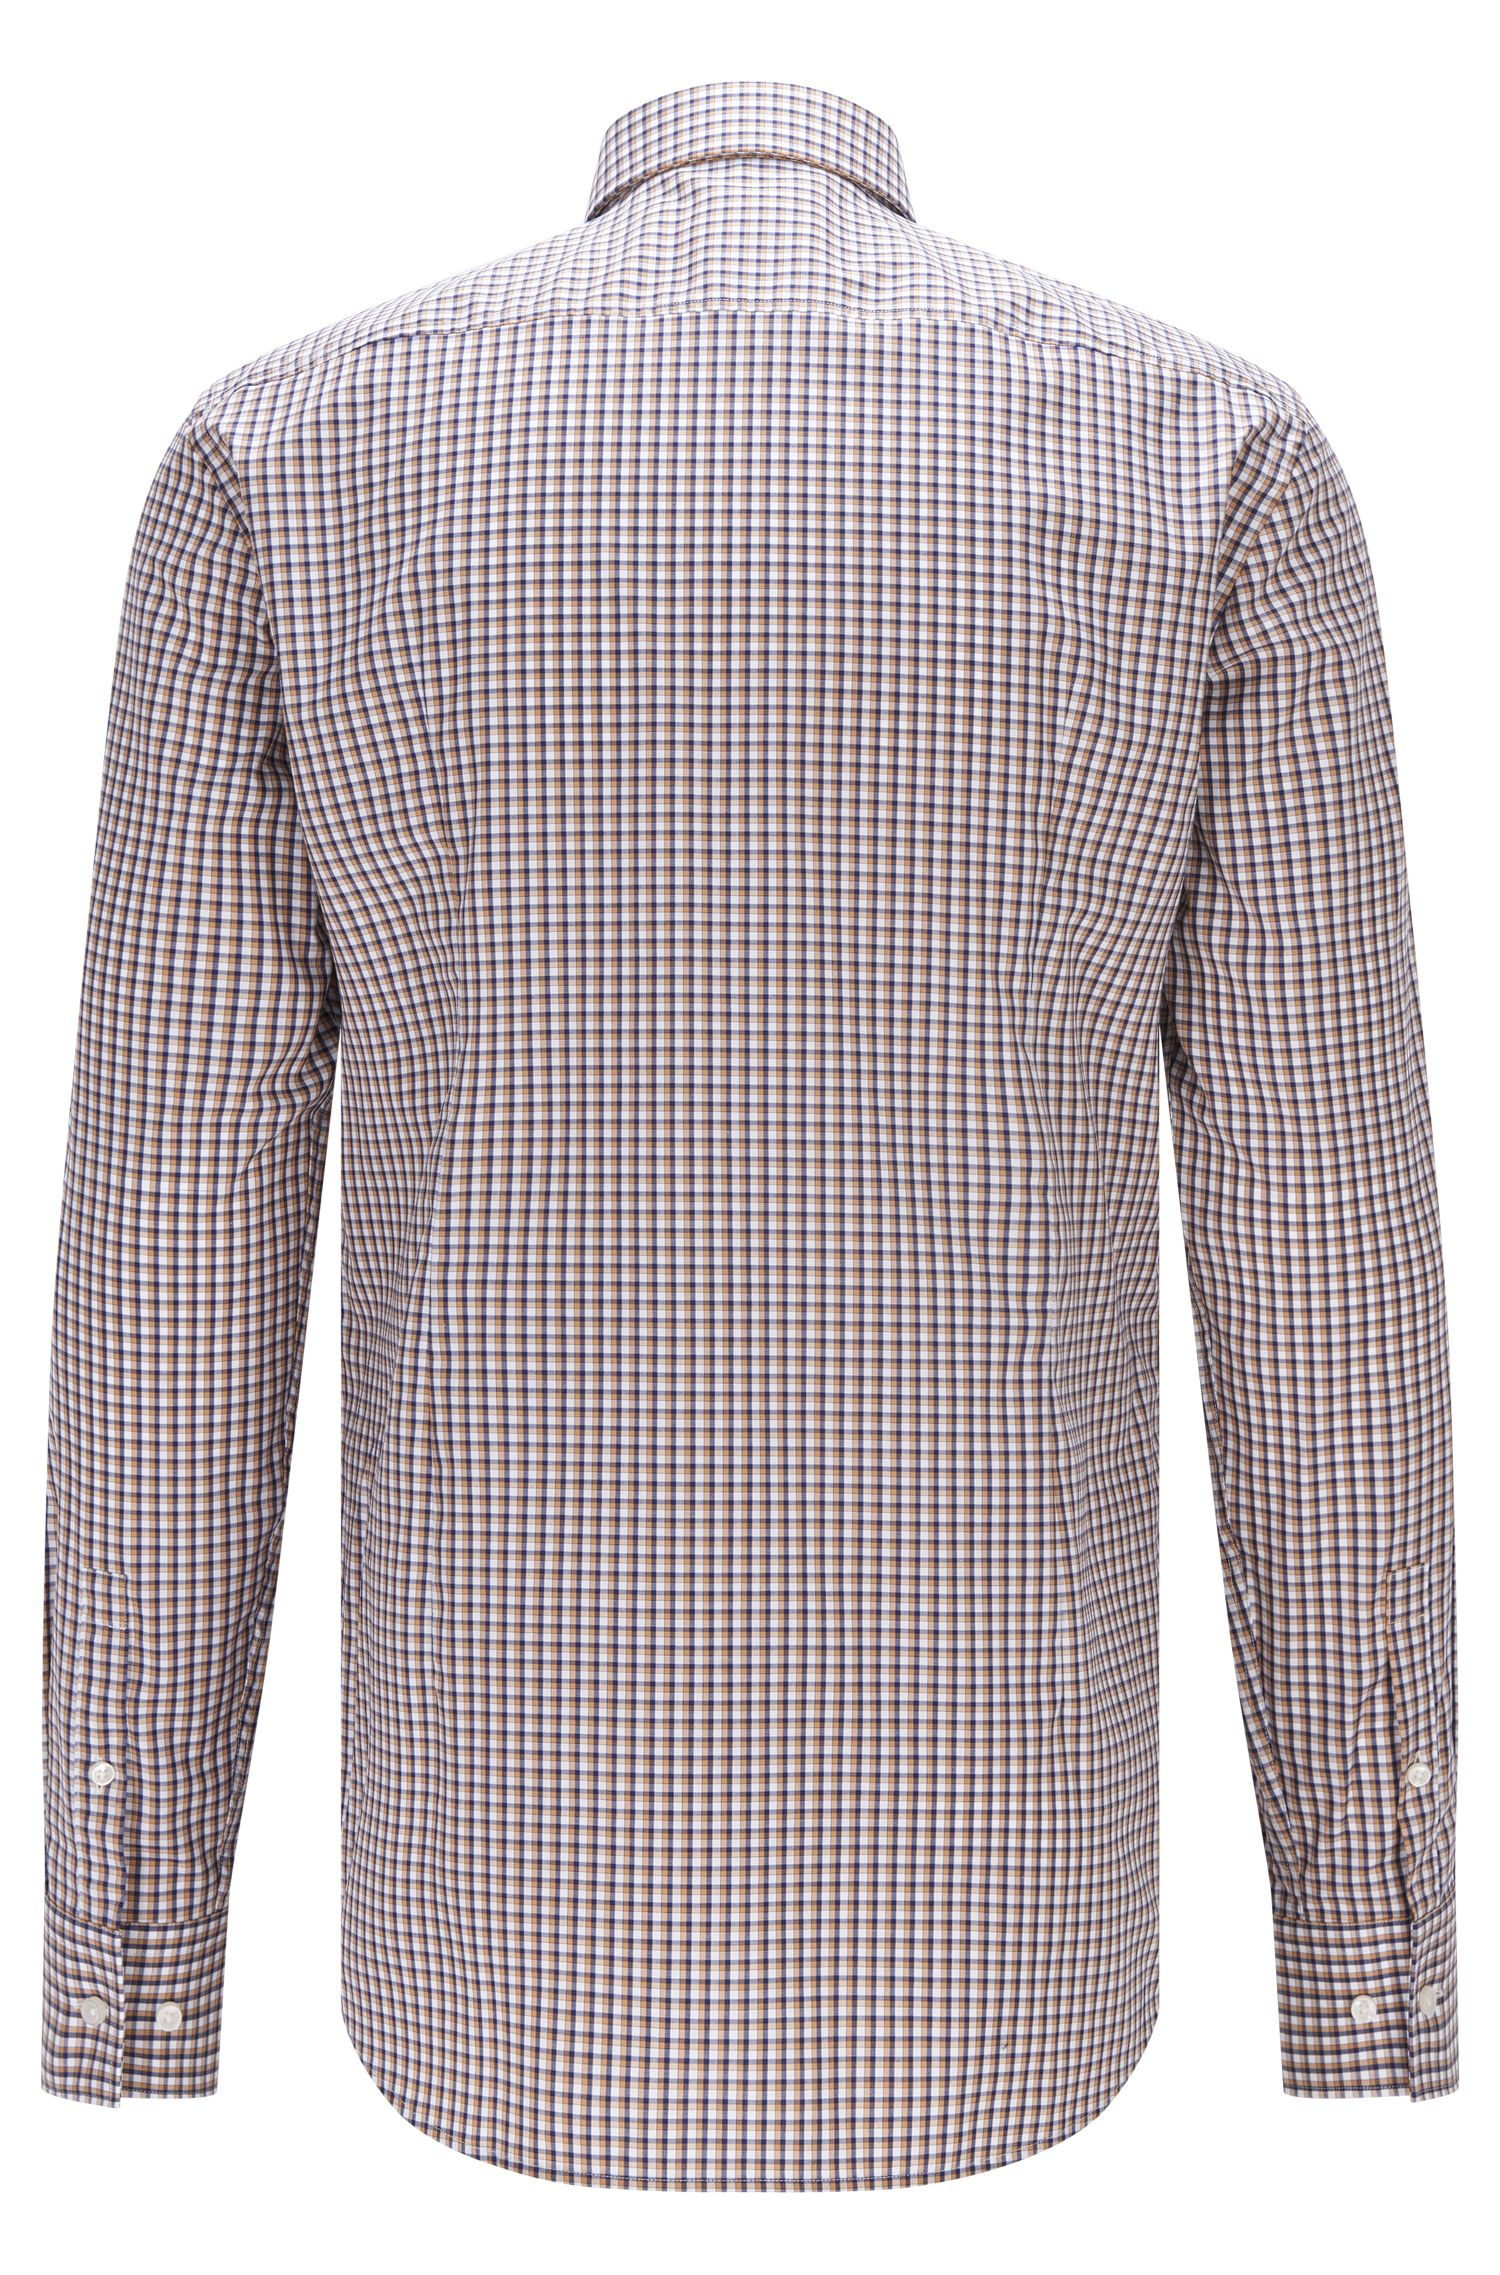 Checked Easy Iron Cotton Dress Shirt, Slim Fit | Jason